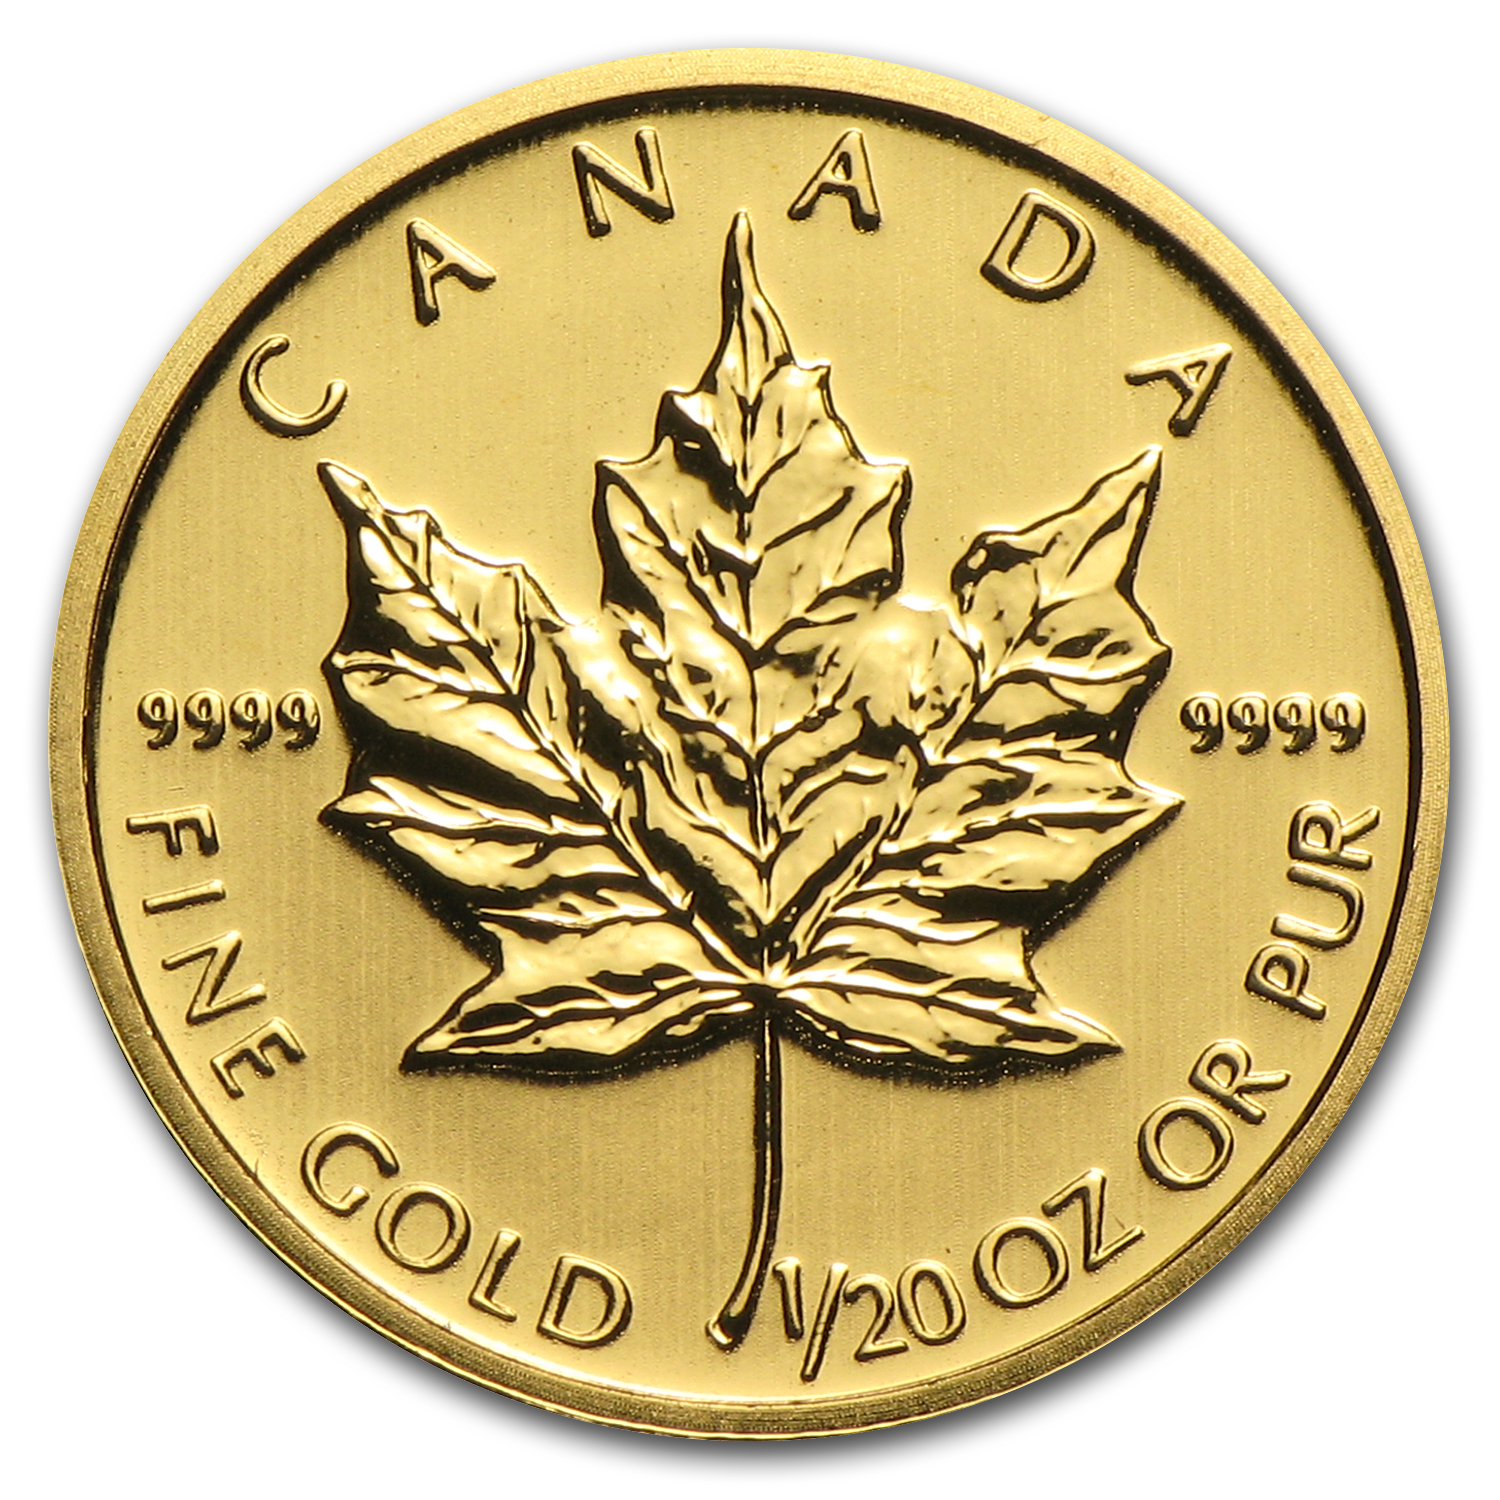 2013 1/20 oz Gold Canadian Maple Leaf BU